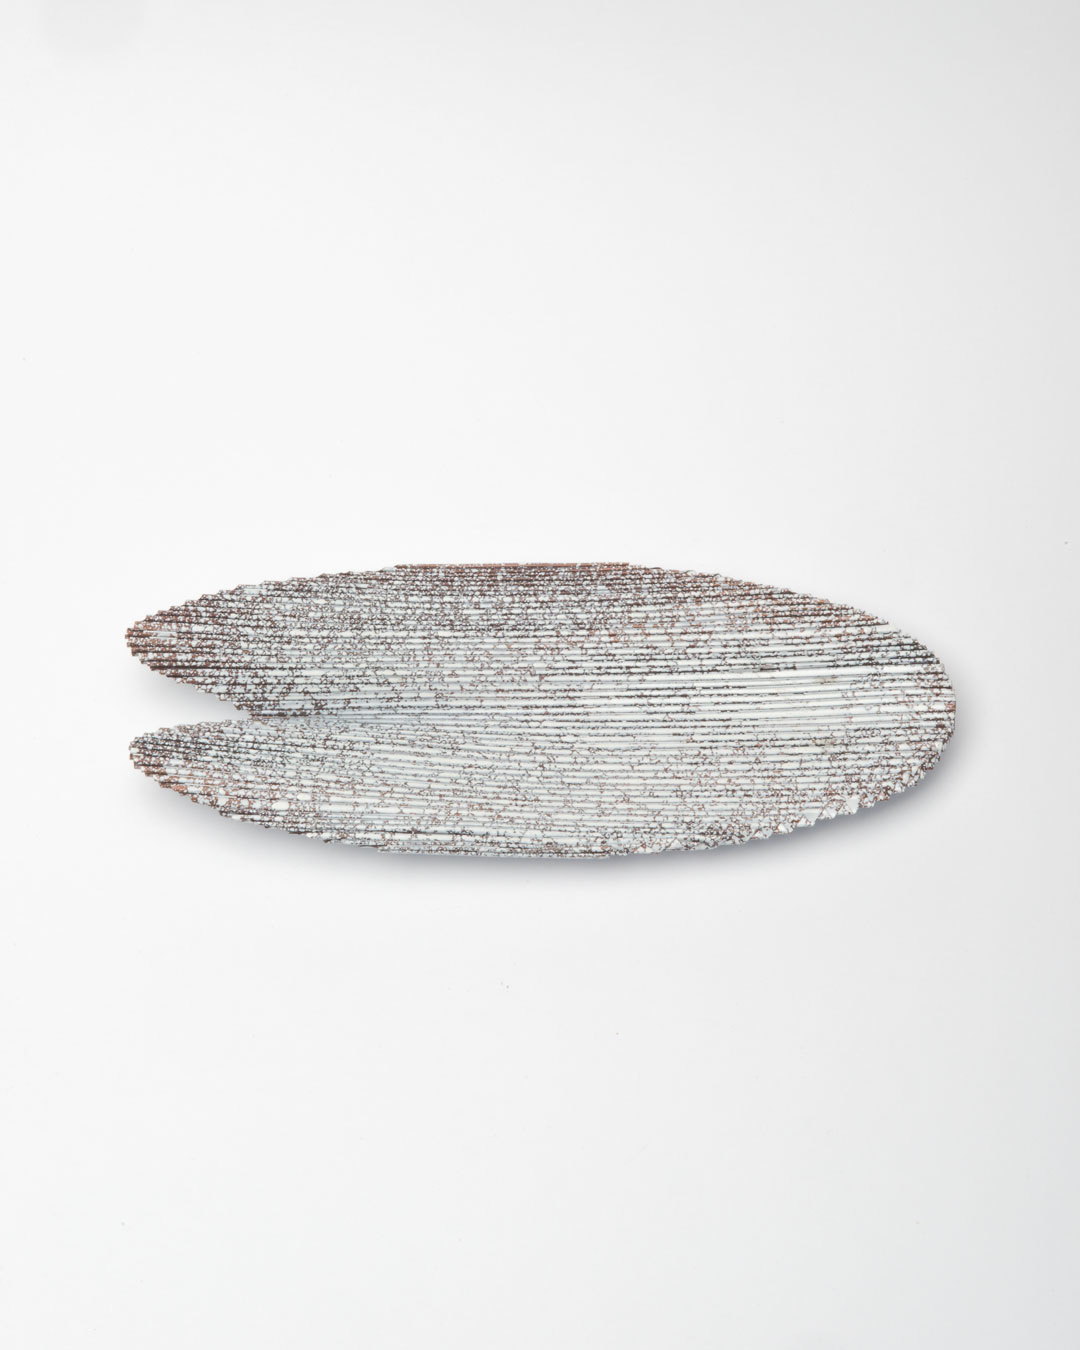 Li Liang, Nr. 3: Line, 2018, brooch; copper, 150 x 50 x 20 mm, €970